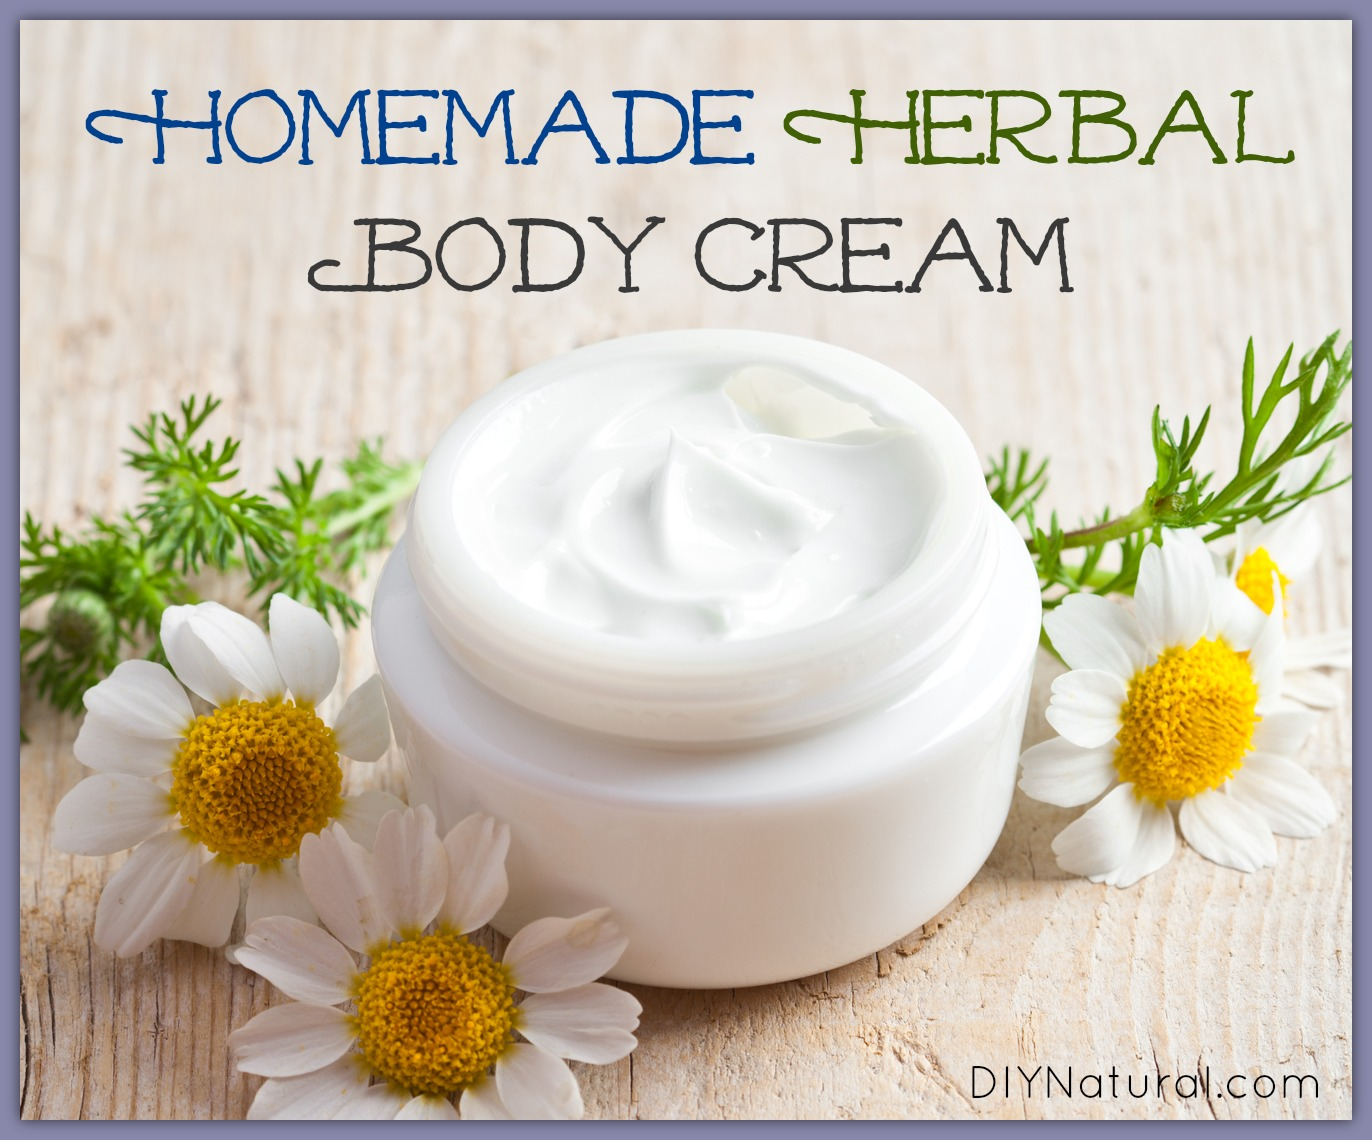 Homemade body lotion made of simple natural ingredients